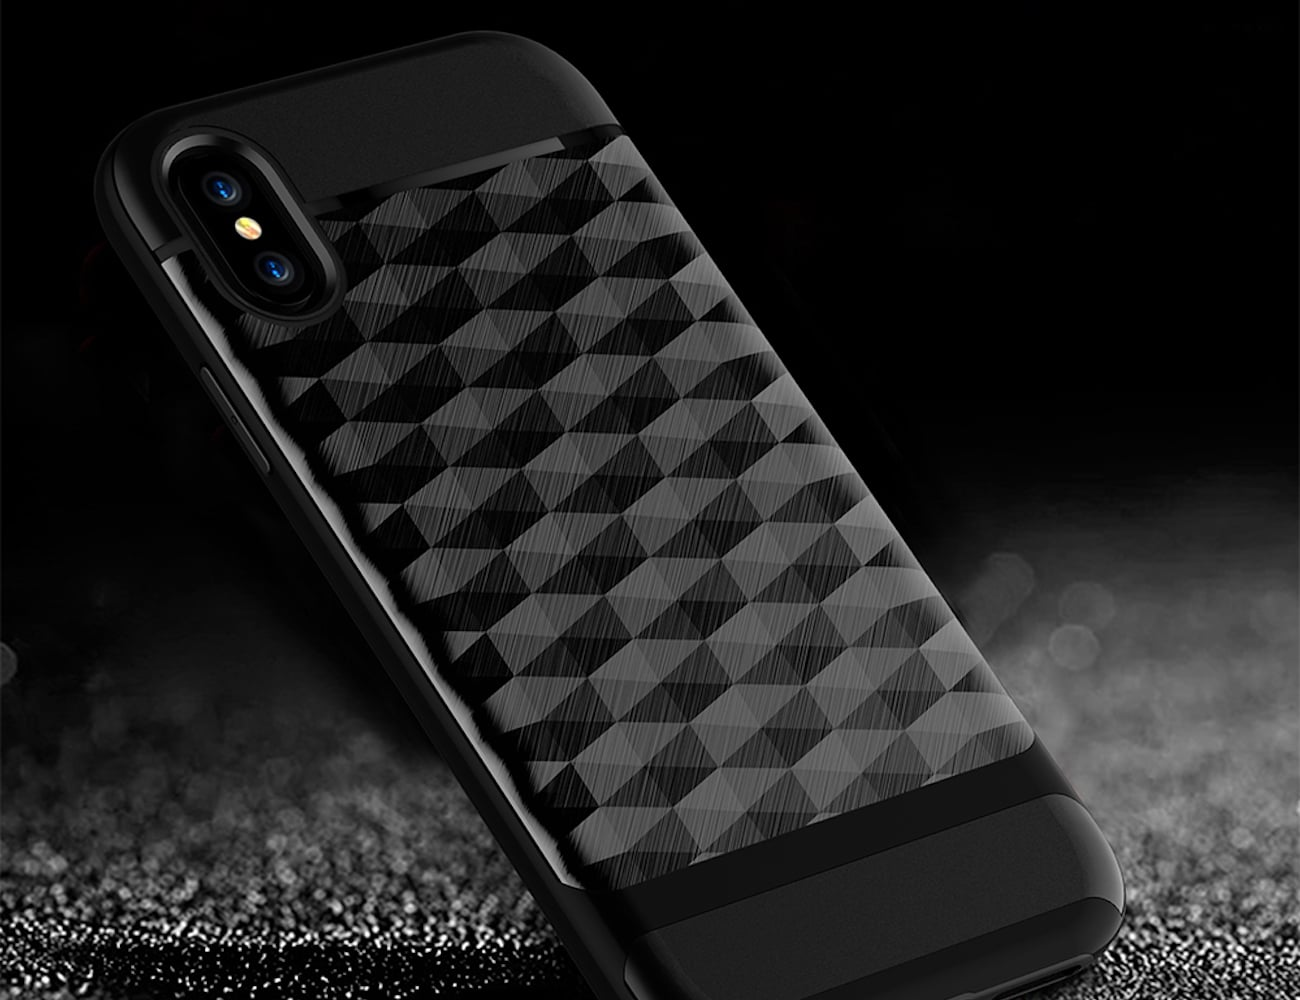 iPhone X Geometric Patterned Case